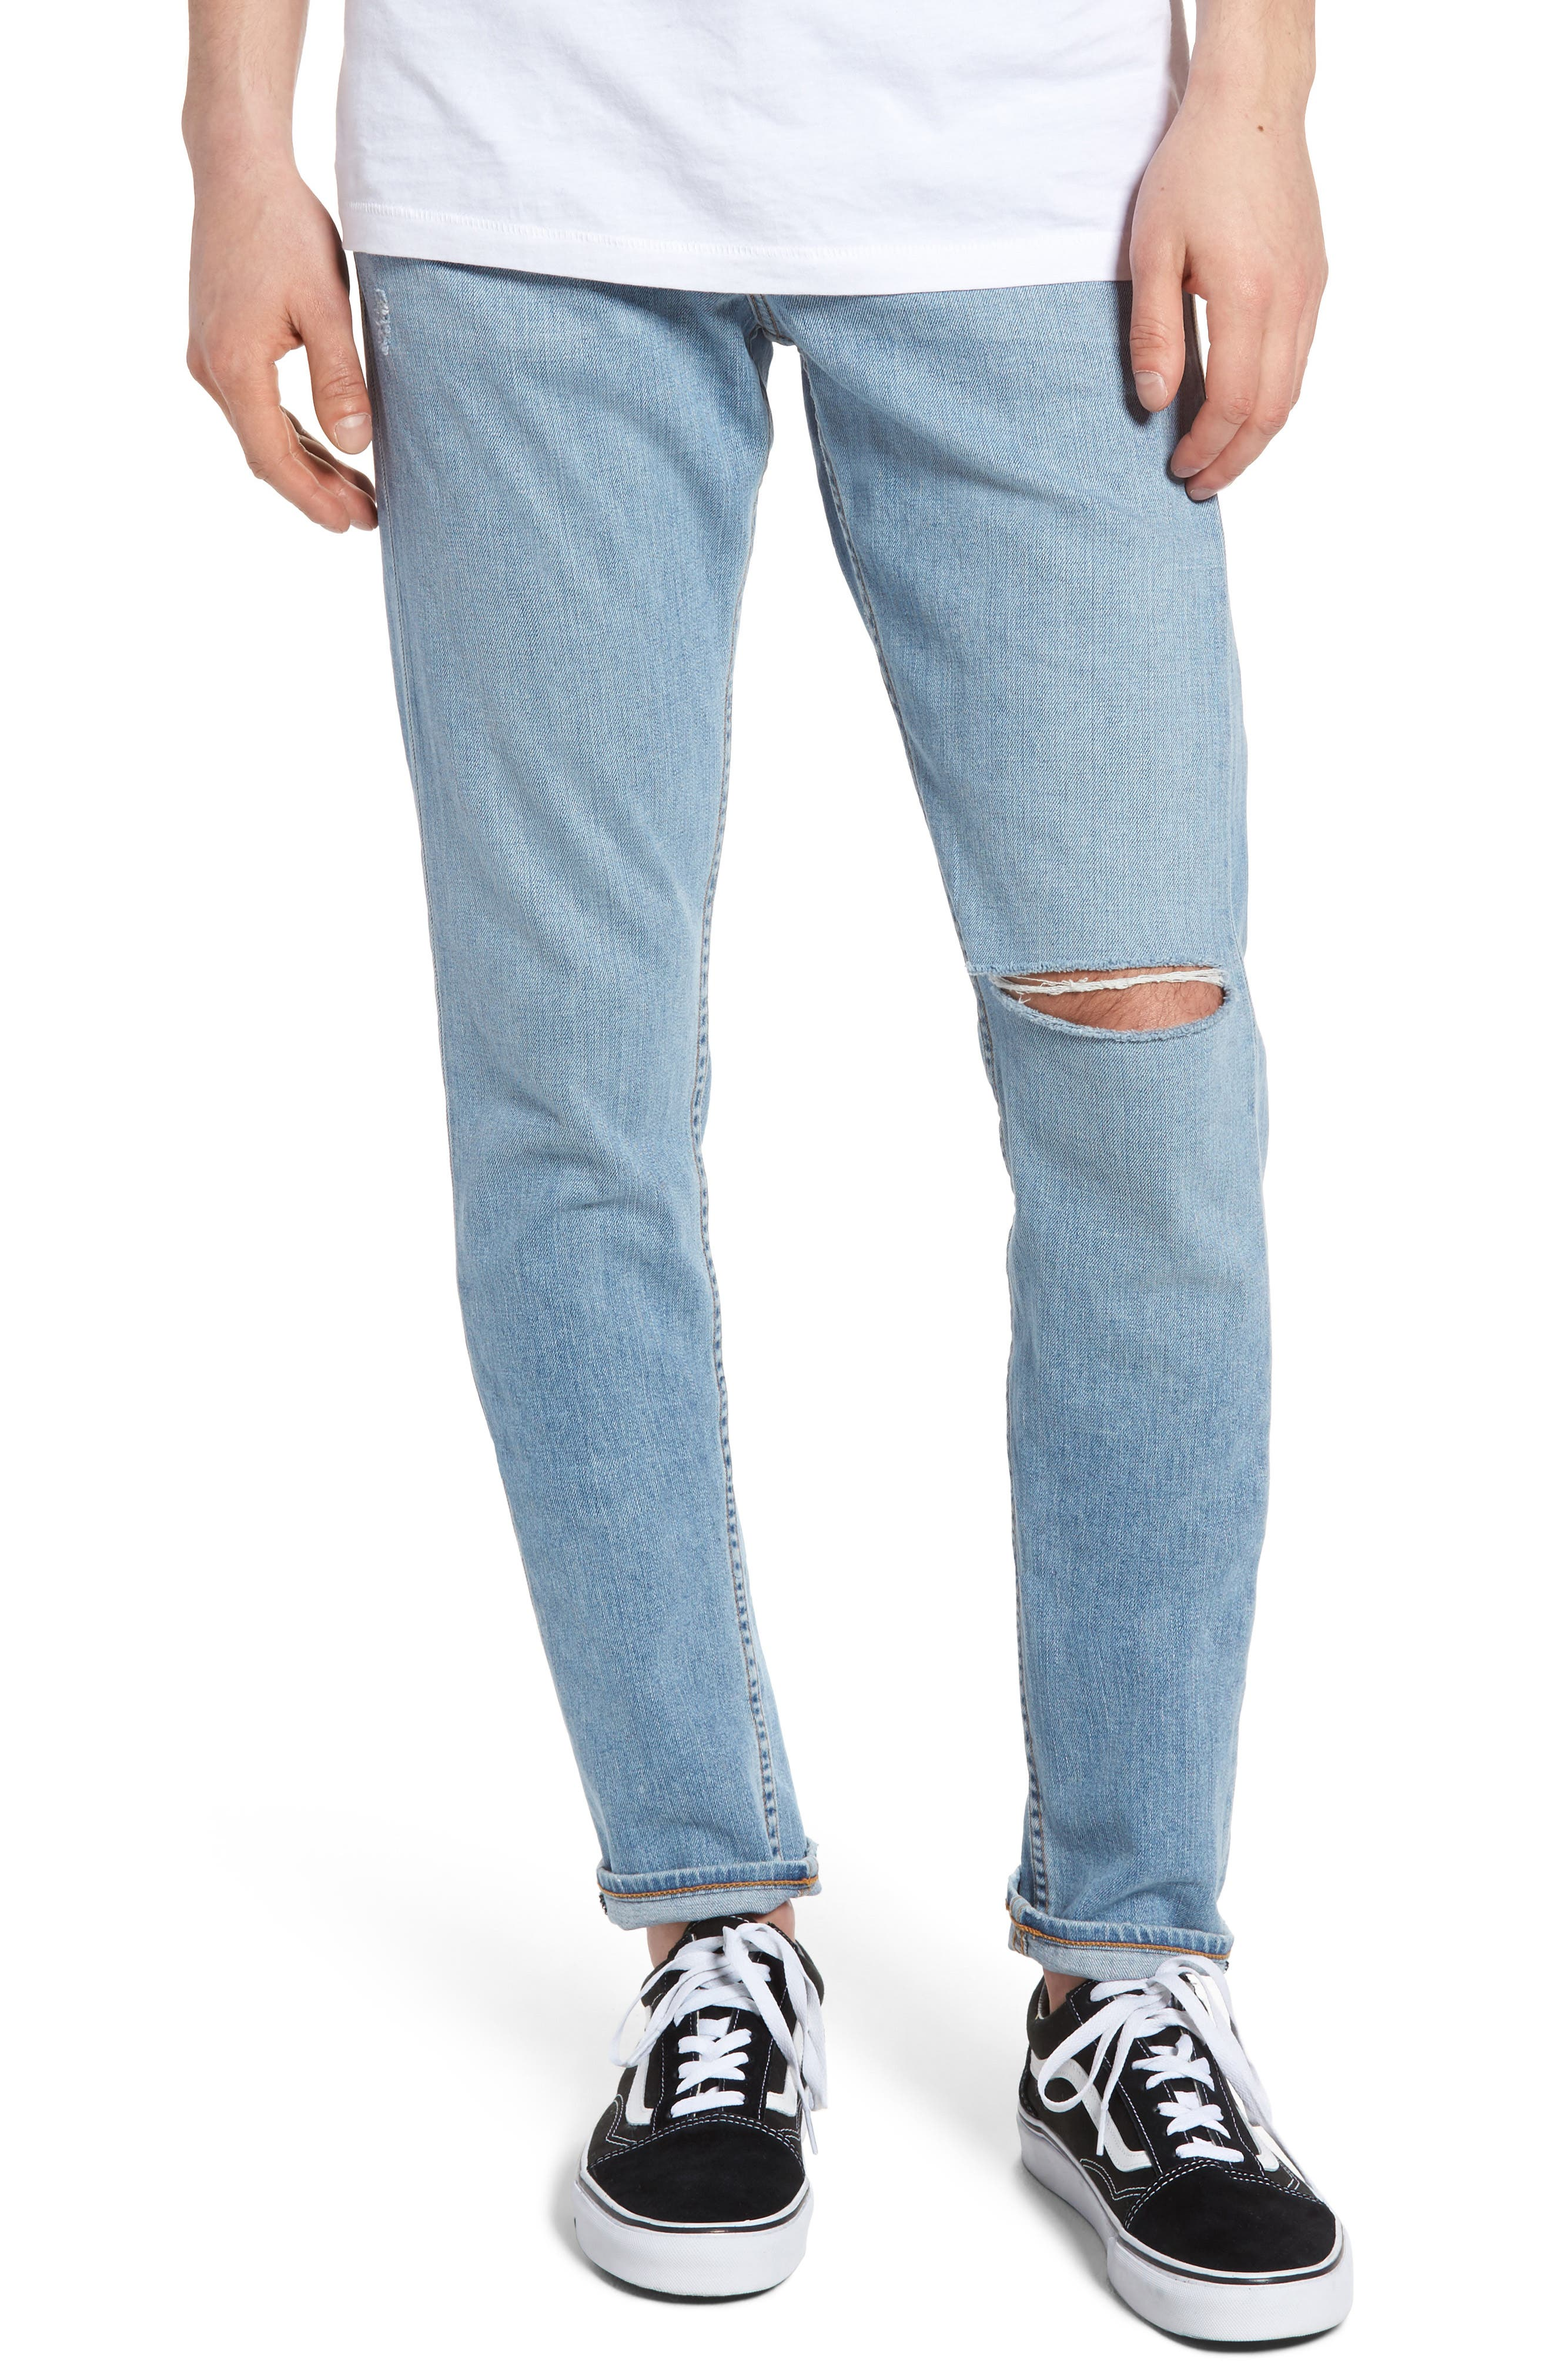 Fit 1 Skinny Fit Jeans,                         Main,                         color, Rhnbk W/ Hls